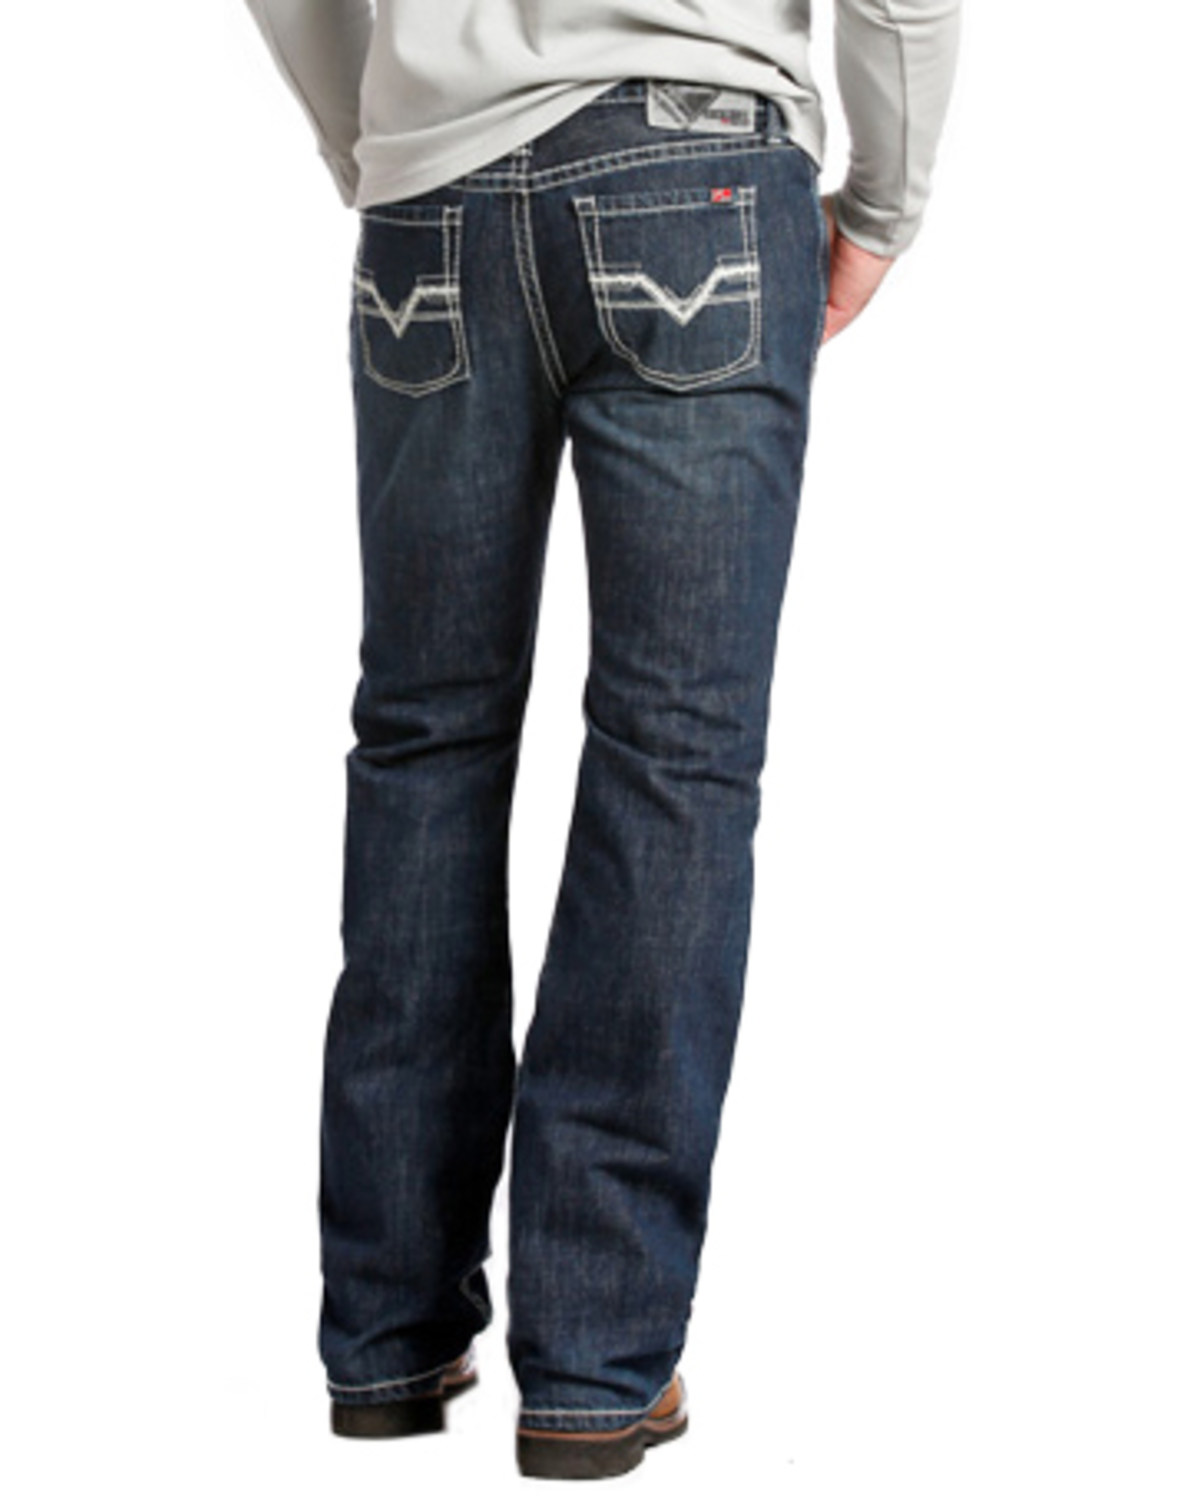 Kids Rock And Roll Jeans